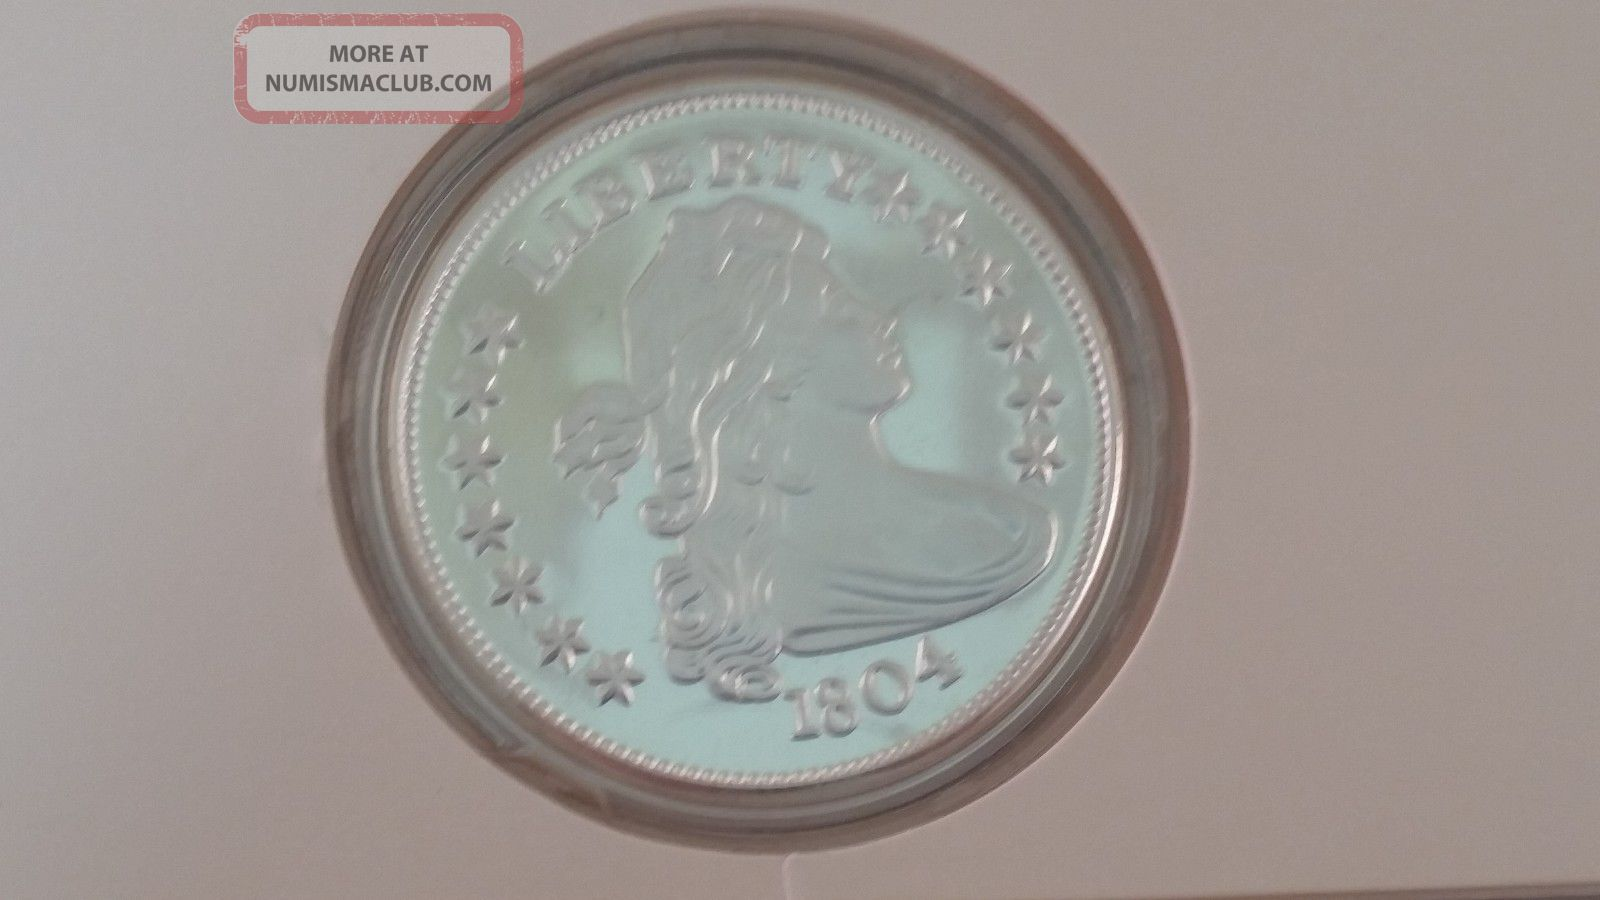 1804 Liberty Bust Dollar Proof Replica.  999 Fine Silver 2 Toz Bullion Round Paper Money: US photo